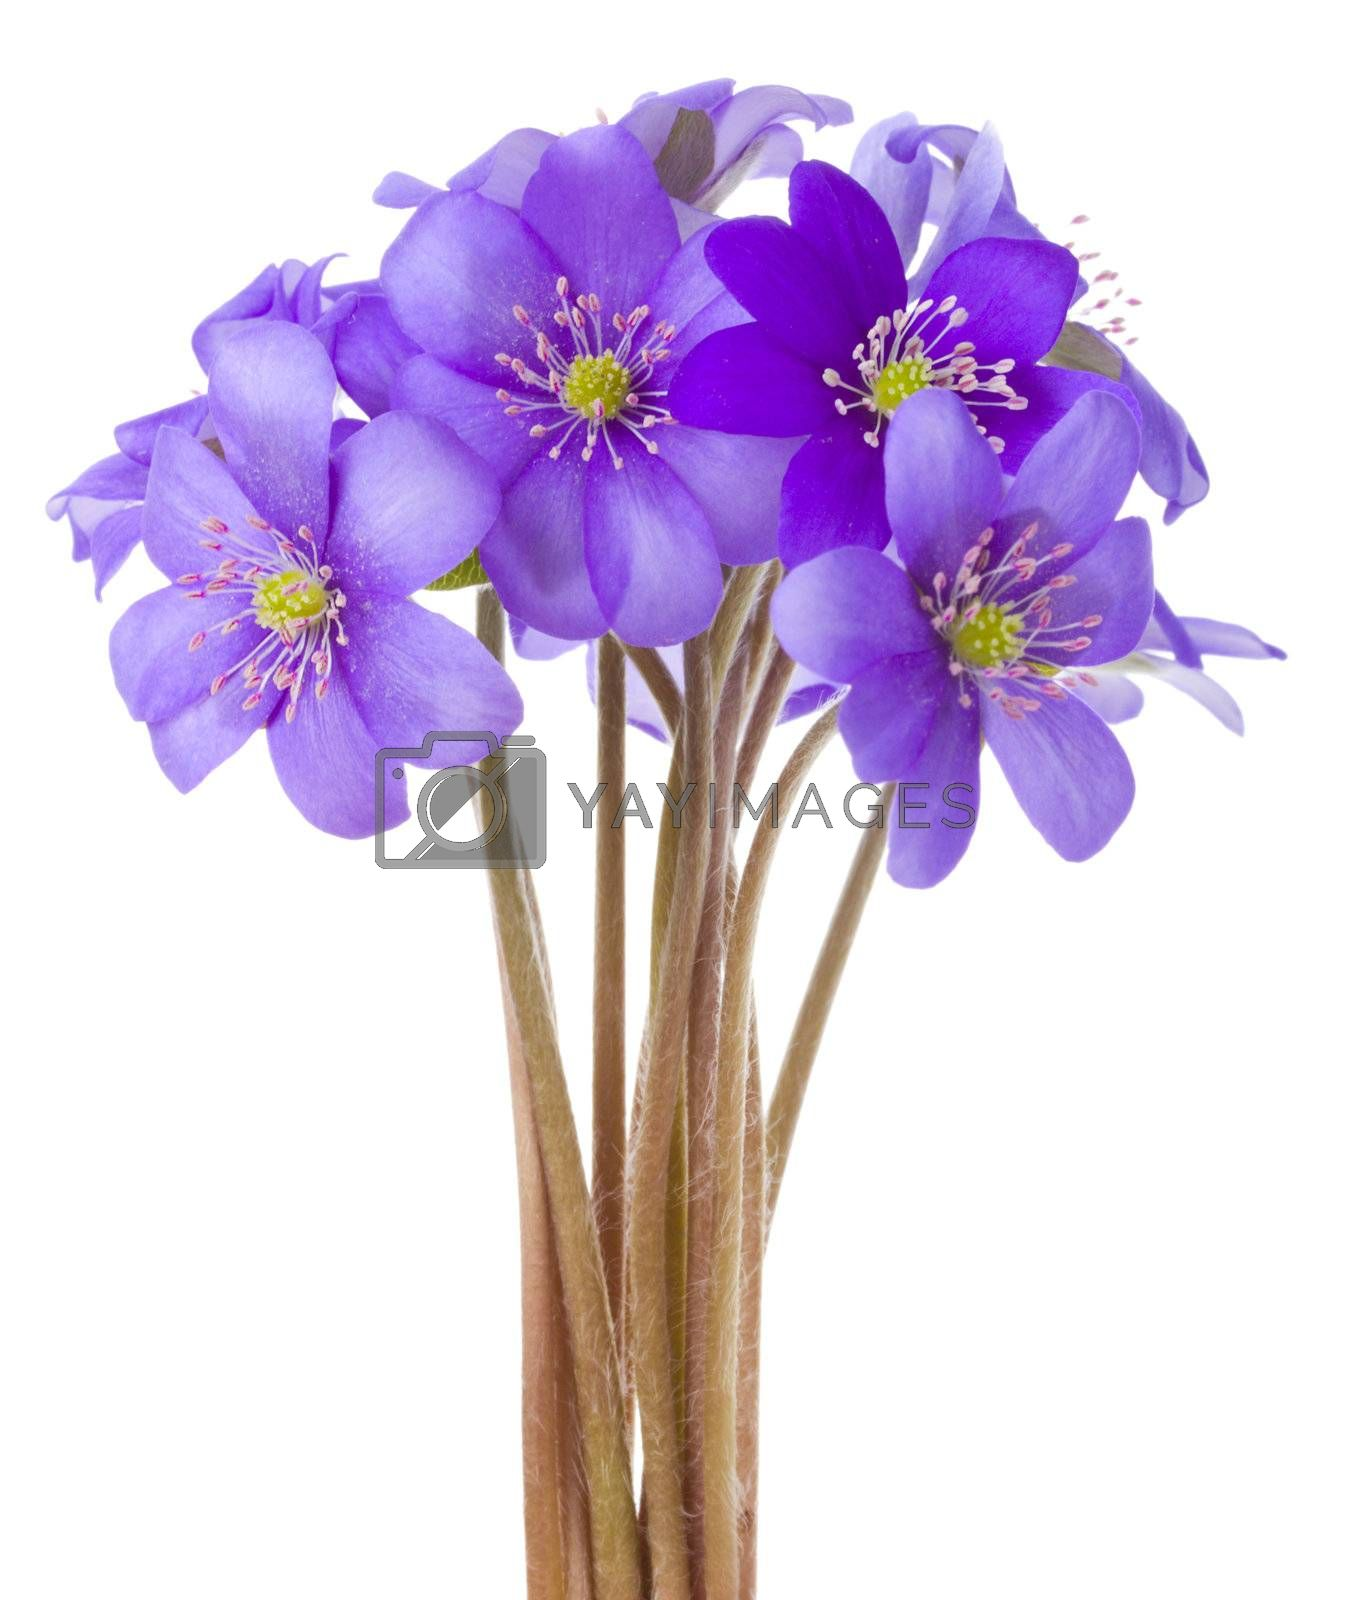 close-up hepatica flowers, isolated on white